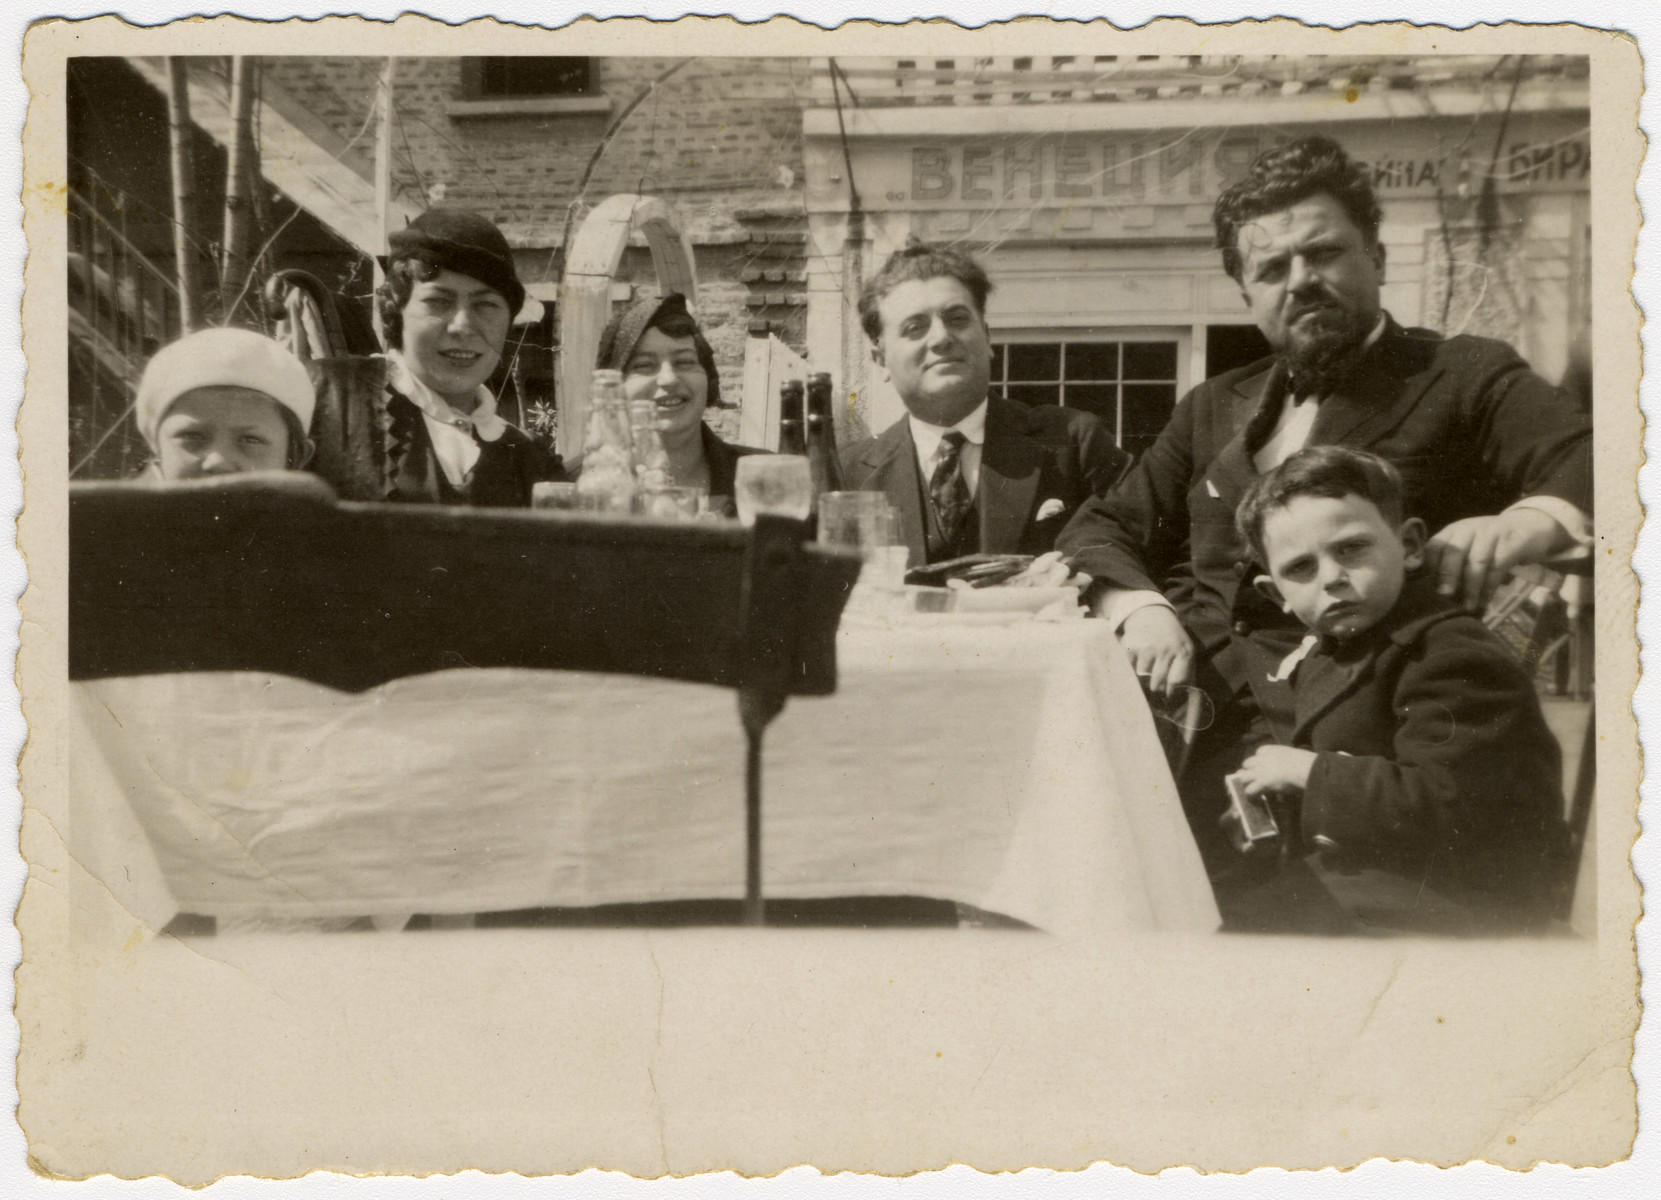 Two Bulgarian Jewish families sit around a table and share a meal.  From left to right are Rosie Hananel, Rachel Hananel, Caroline Farhi, Nissim Farhi, Rabbi Asher Hananel (the Chief Rabbi of Bulgaria and neighbor of the Farhi's) and Albert Farhi.